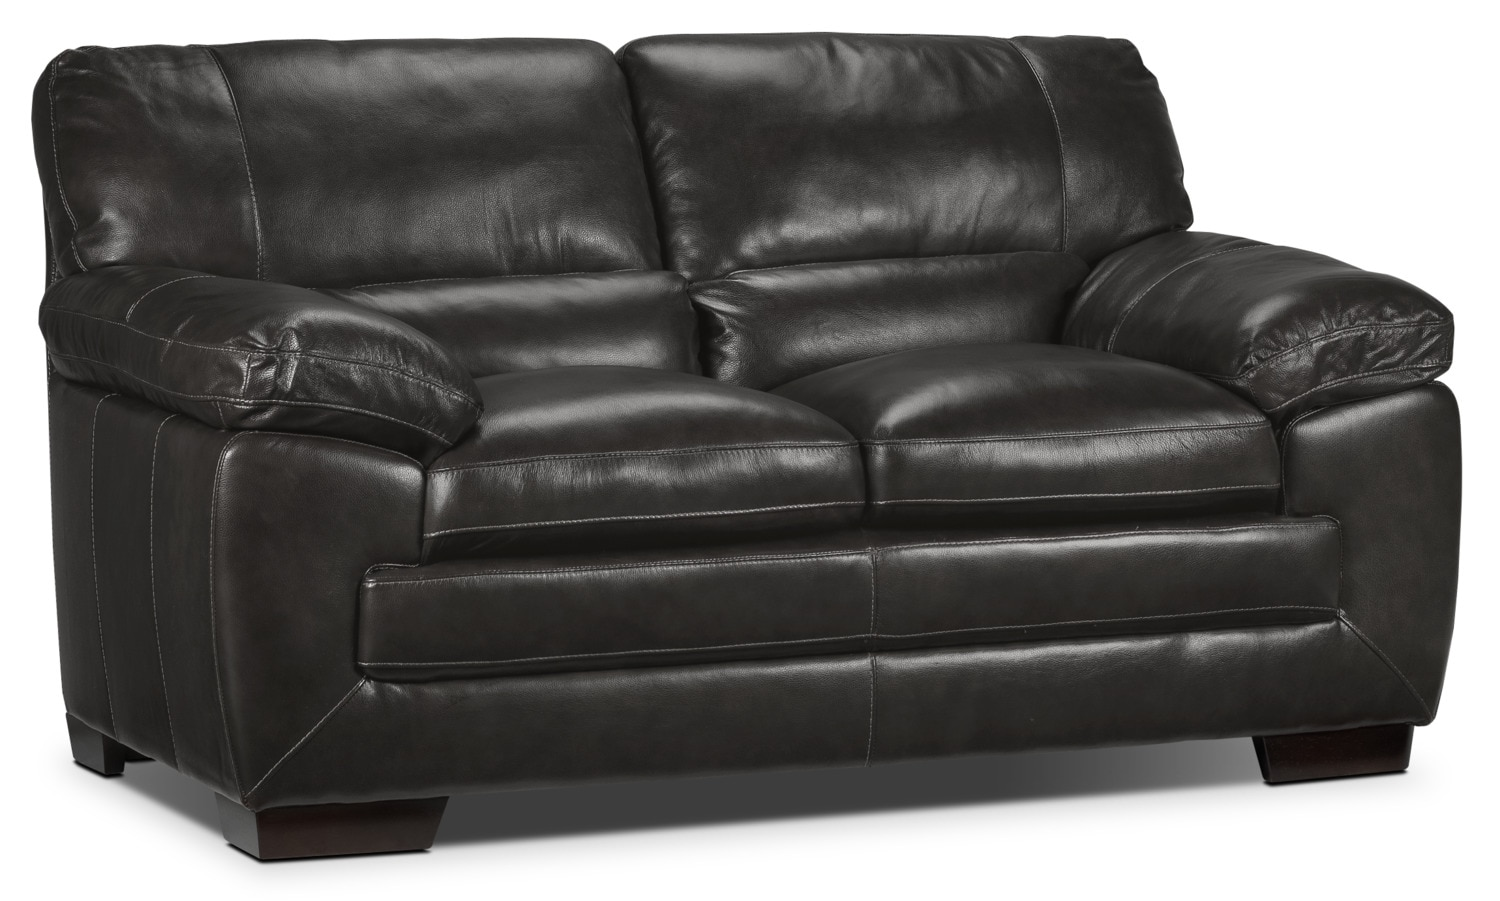 Living Room Furniture - Amarillo Loveseat - Charcoal